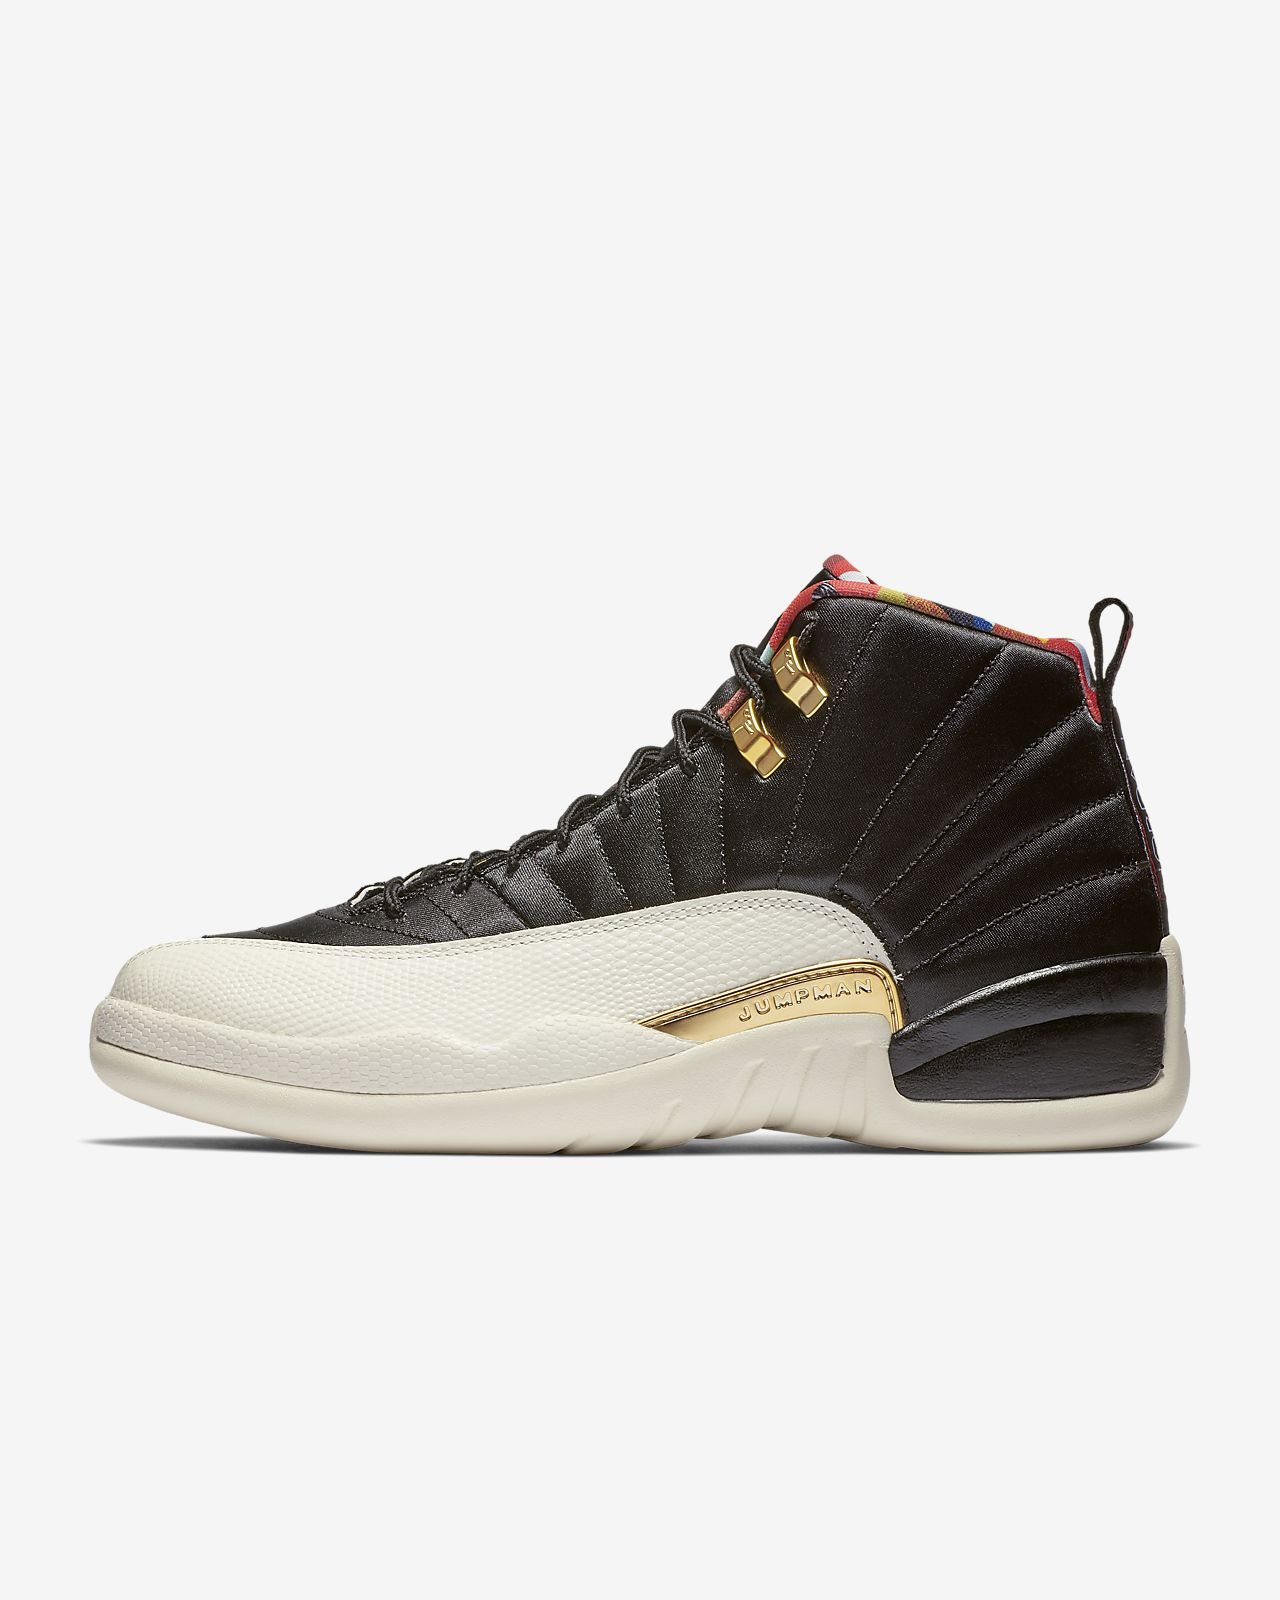 promo code 2aa43 df015 ... Air Jordan 12 Retro CNY Men s Shoe